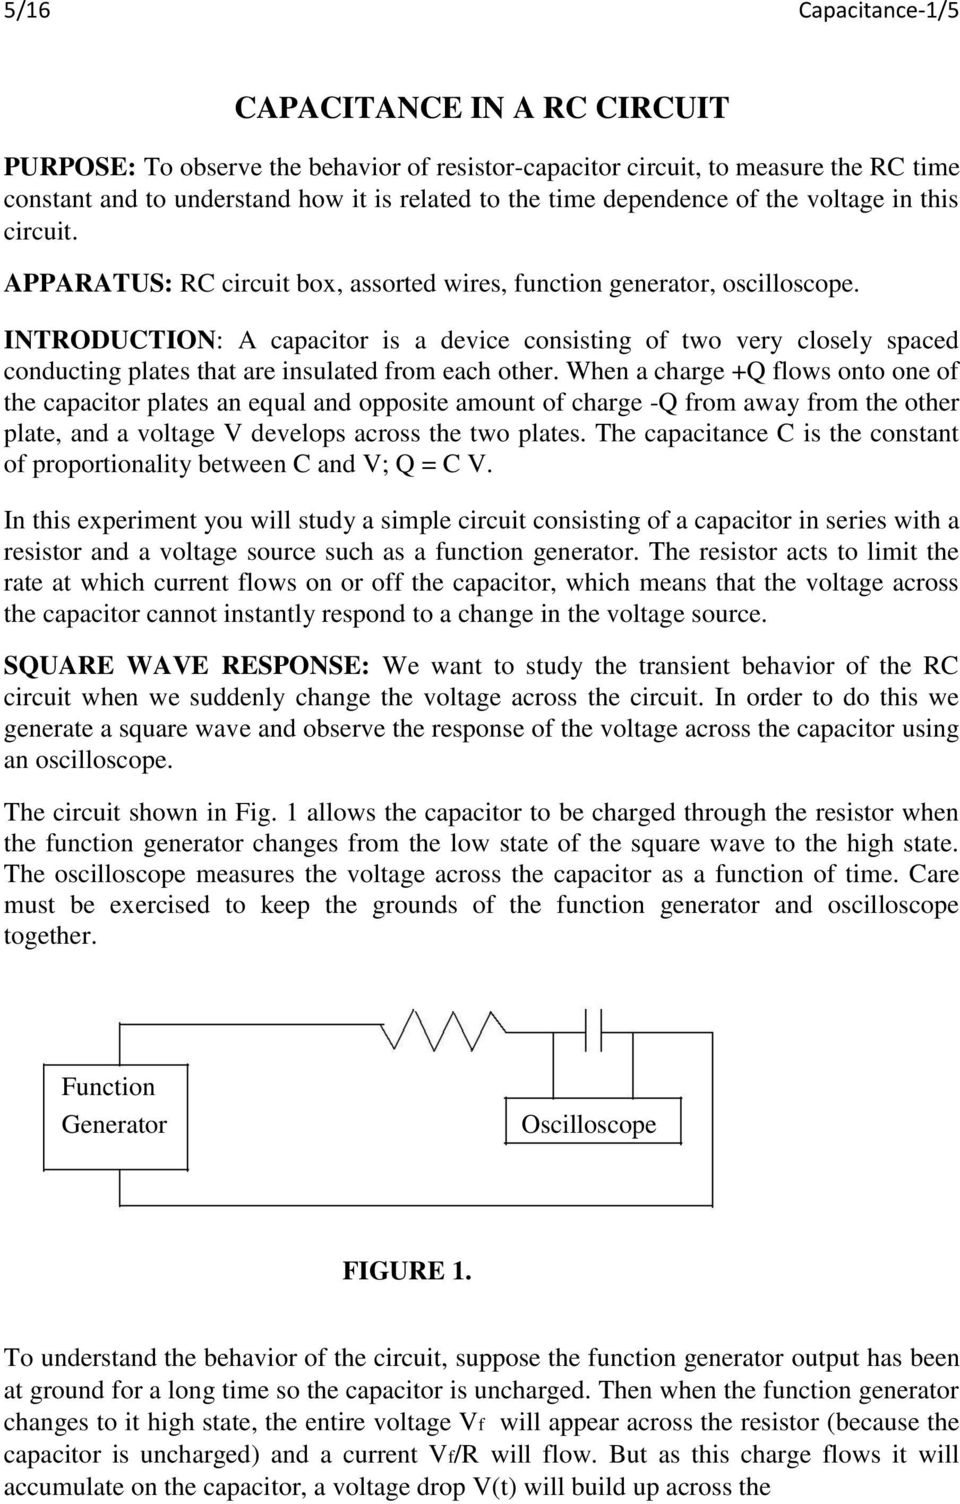 Capacitance In A Rc Circuit Pdf Simple Function Generator Introduction Capacitor Is Device Consisting Of Two Very Closely Spaced Conducting Plates That